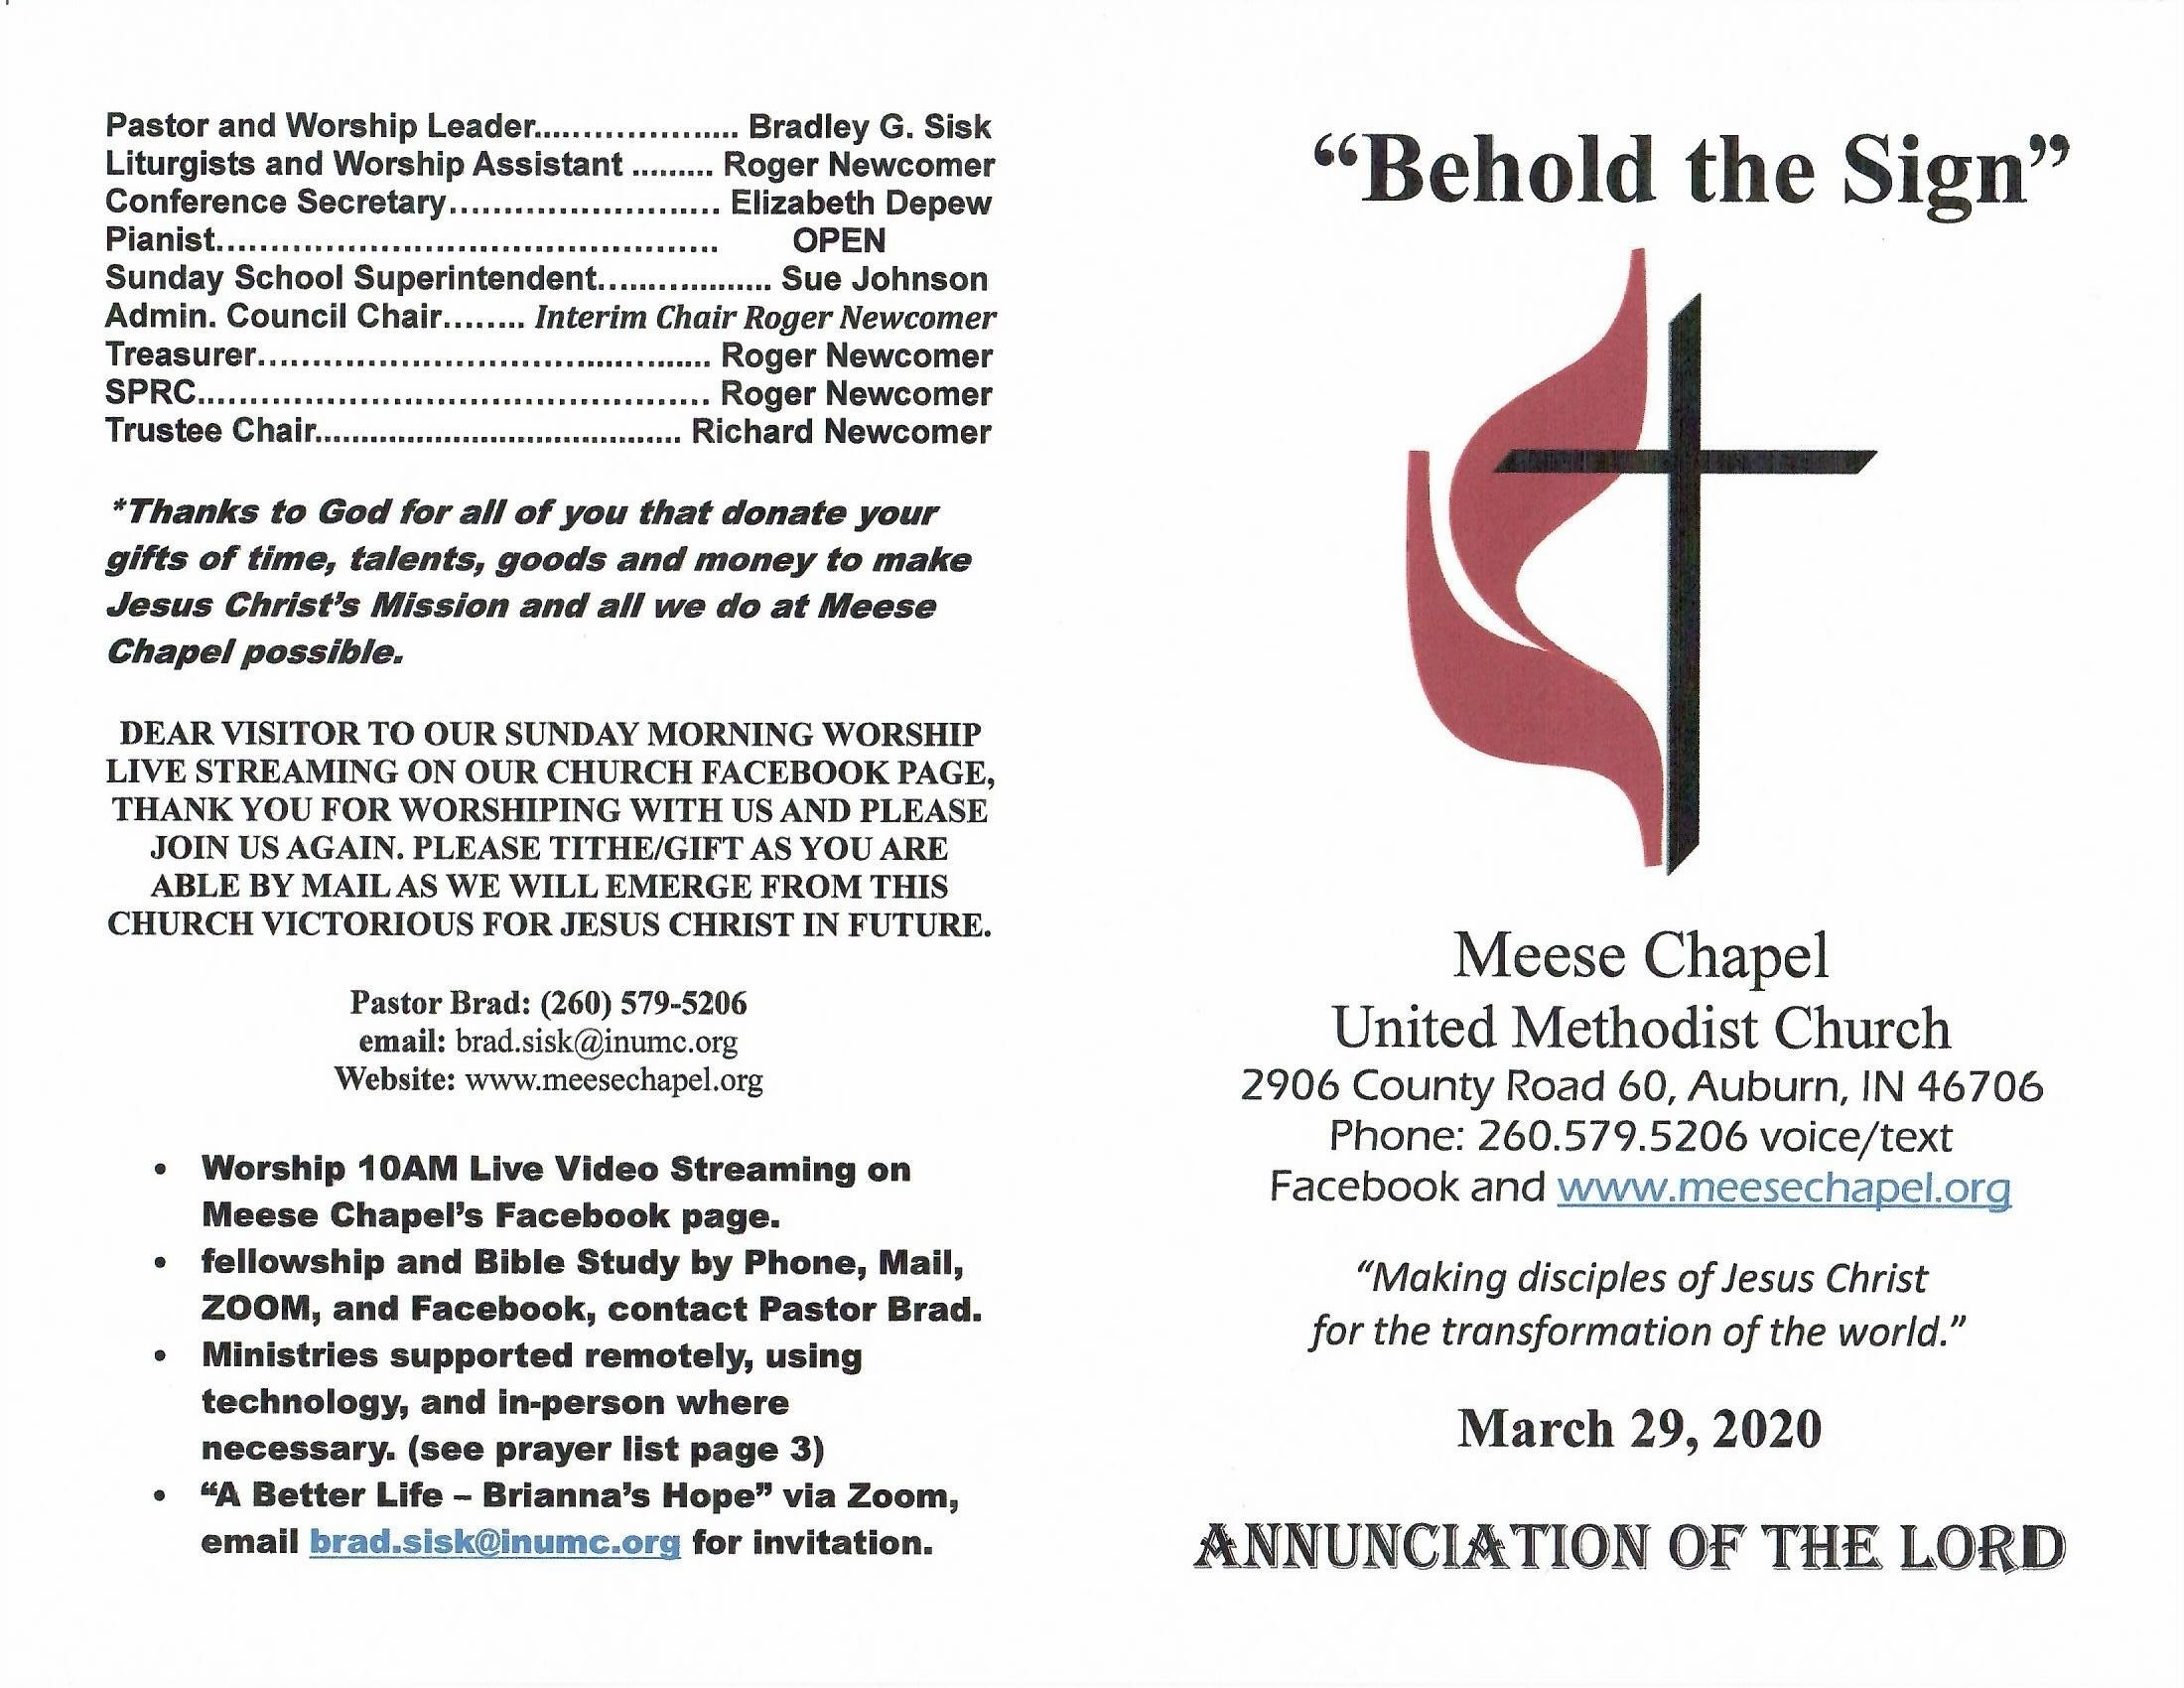 Worship | We Welcome You  Methodist Church Colors By Sundays 2020